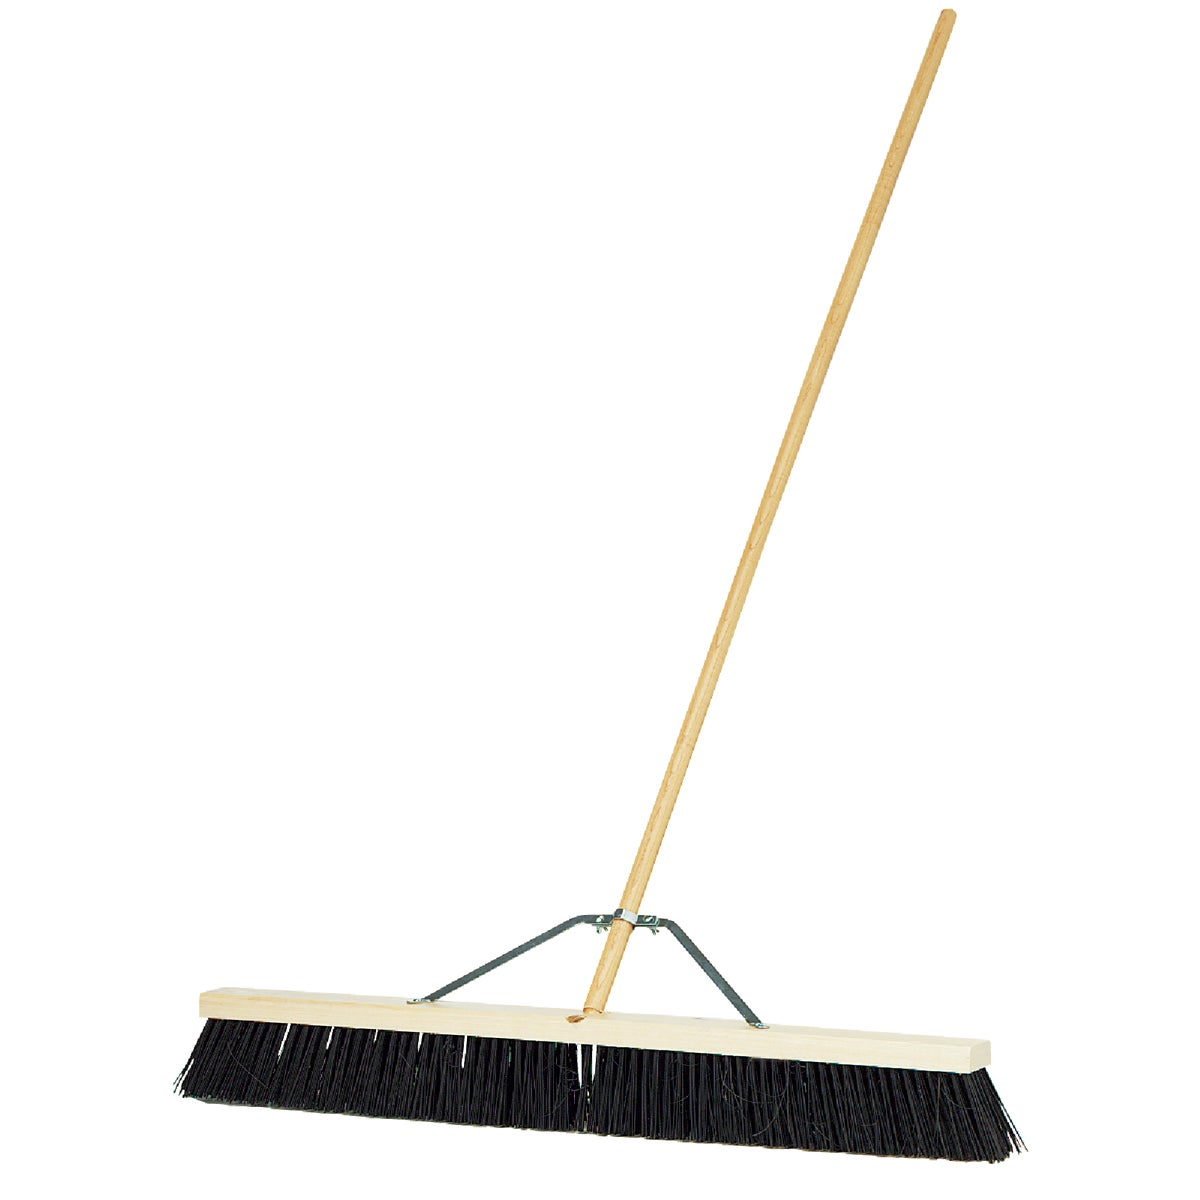 "36"" POLYPRO PUSH BROOM - 09994 by D Q B Ind"